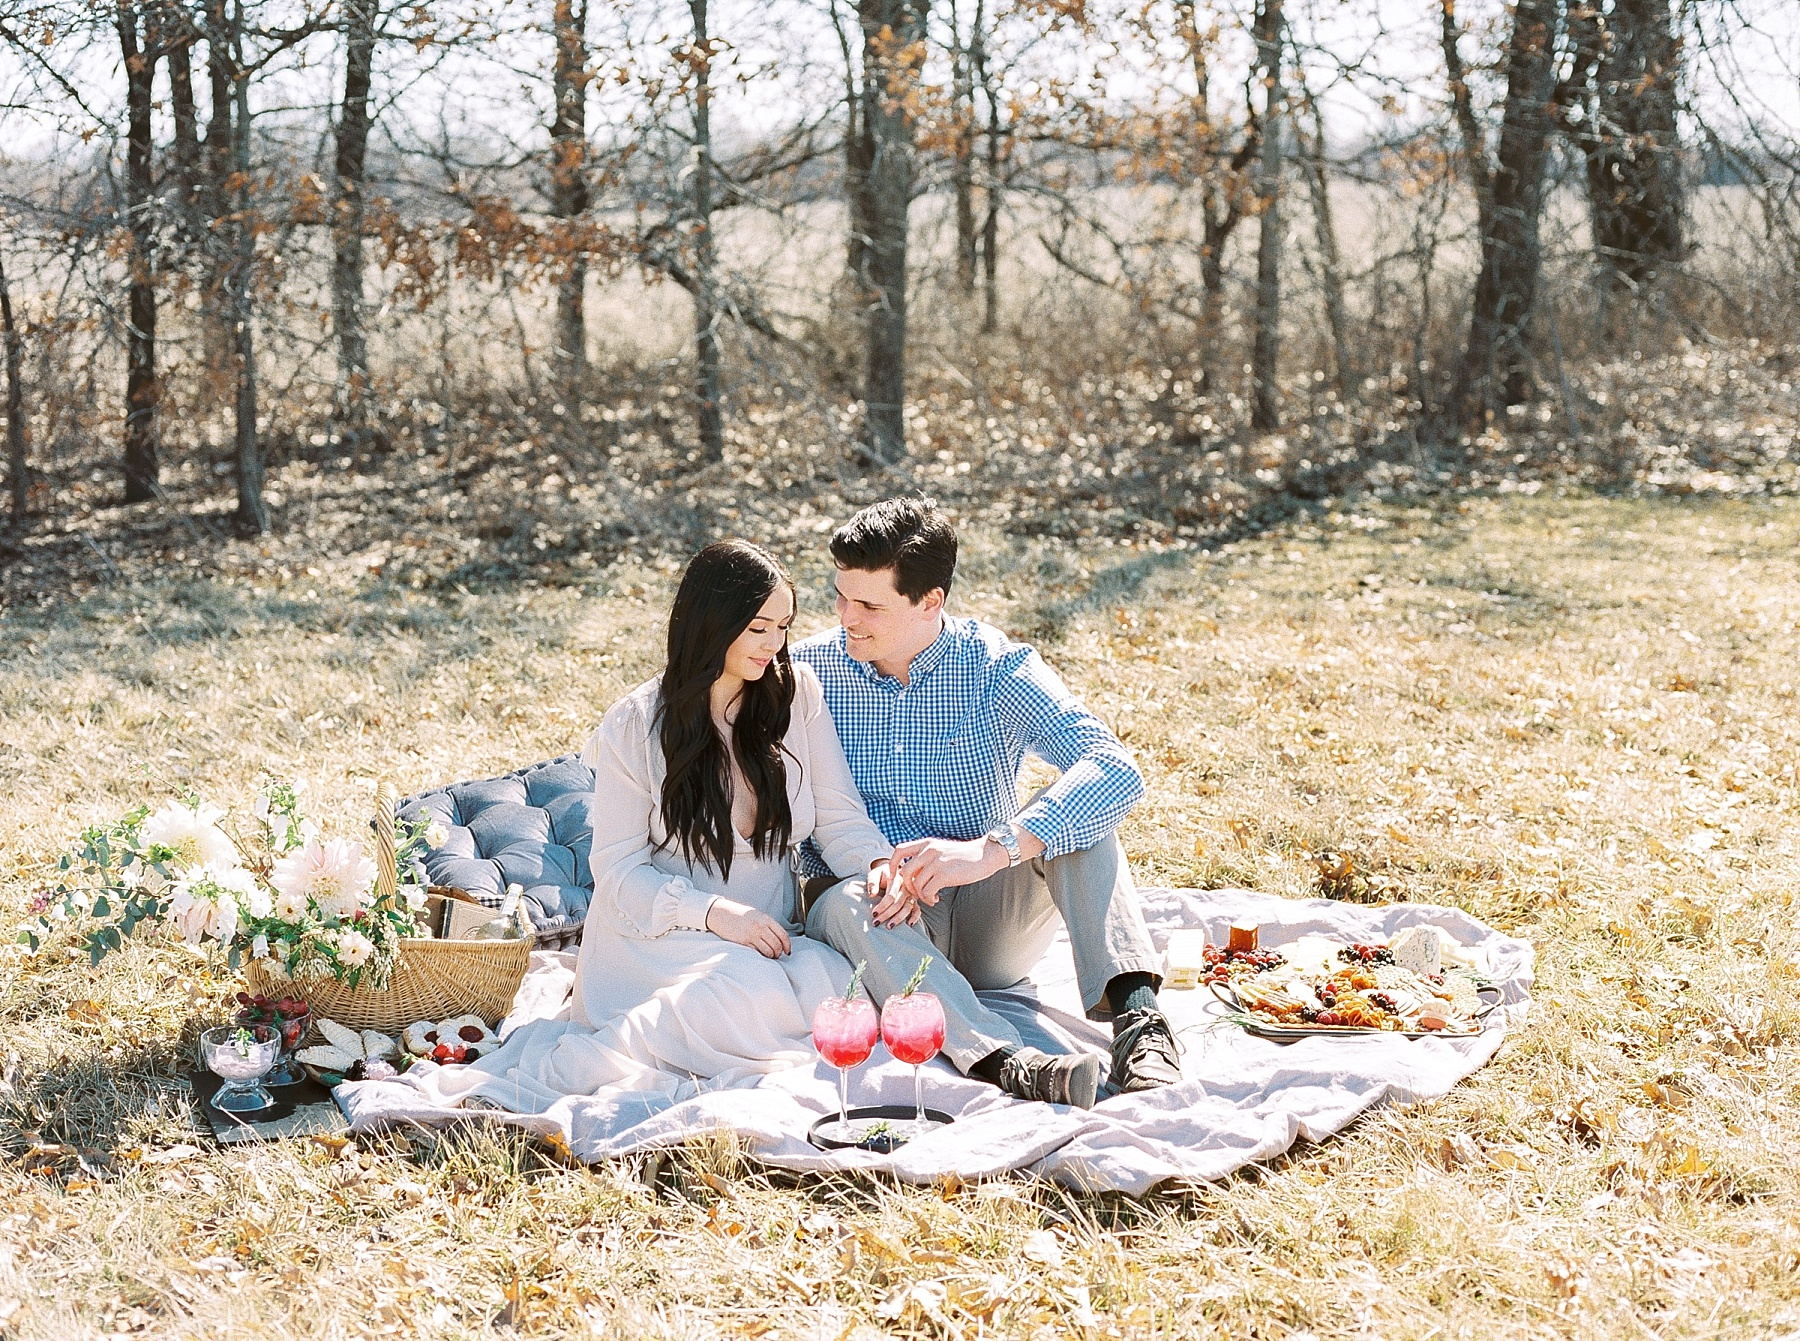 Late Fall Farm-to-table Inspired Brunch Picnic Engagement Session During Wedding Weekend by Kelsi Kliethermes Photography Best Missouri and Maui Wedding Photographer_0006.jpg